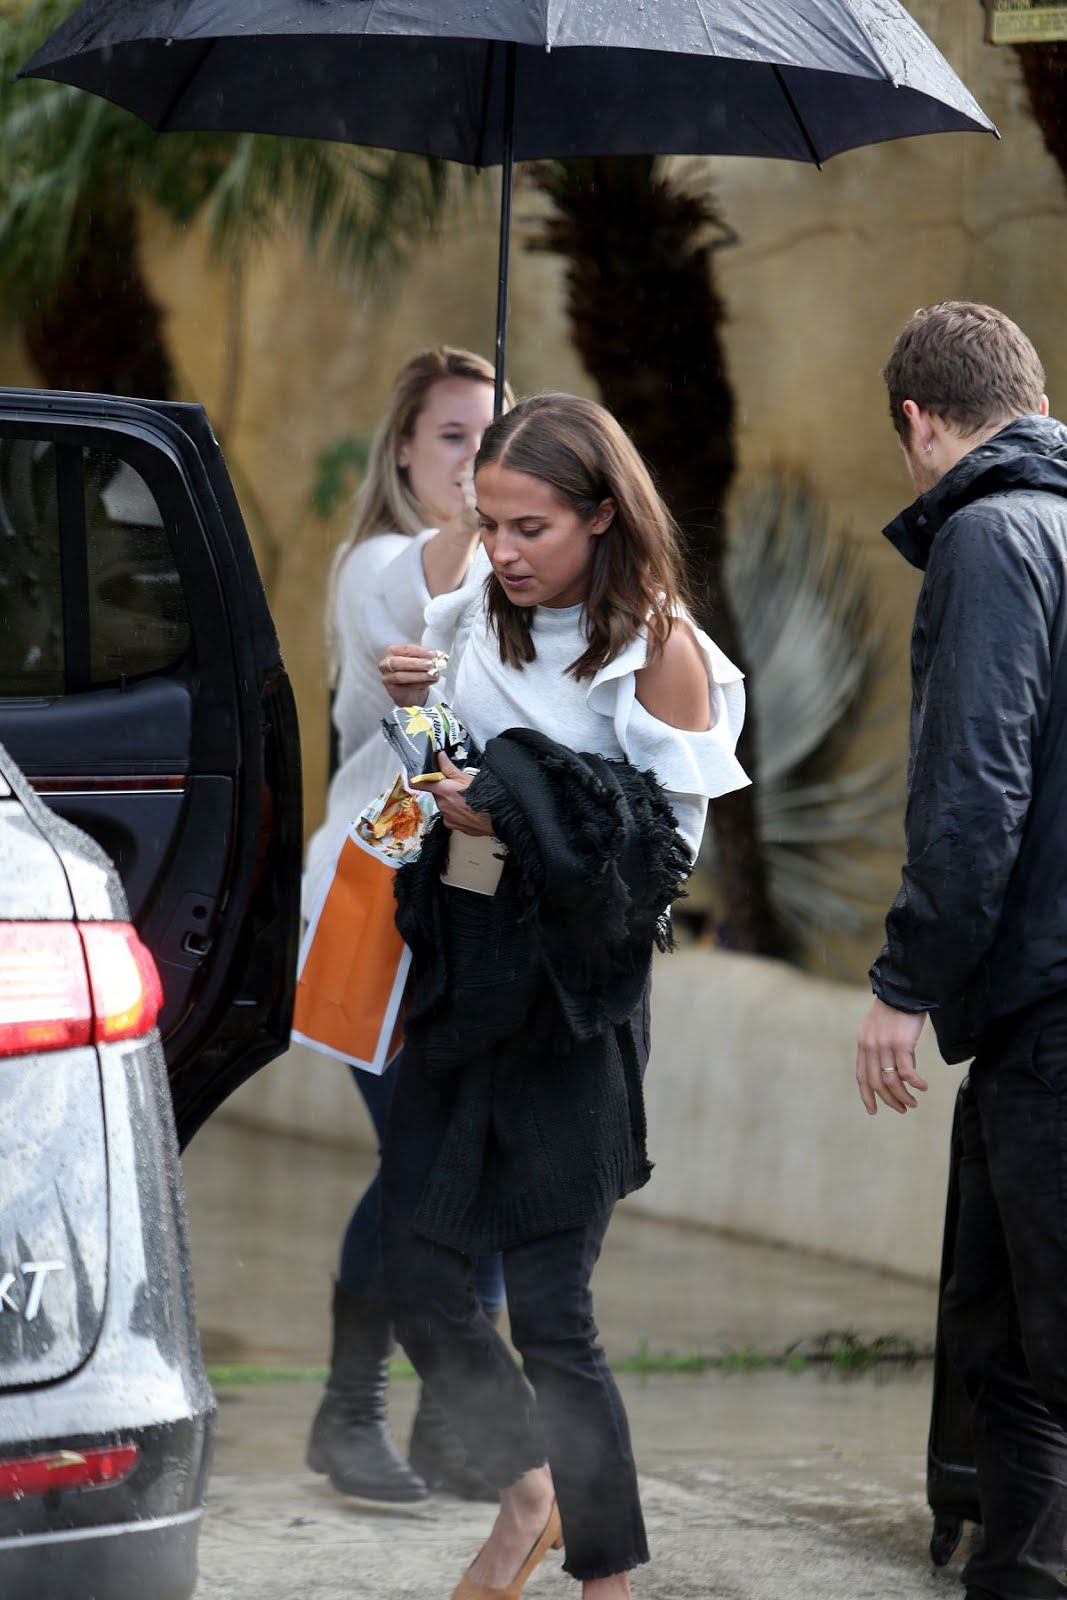 Alicia Vikander leaves her car in heavy rain In Venice Beach